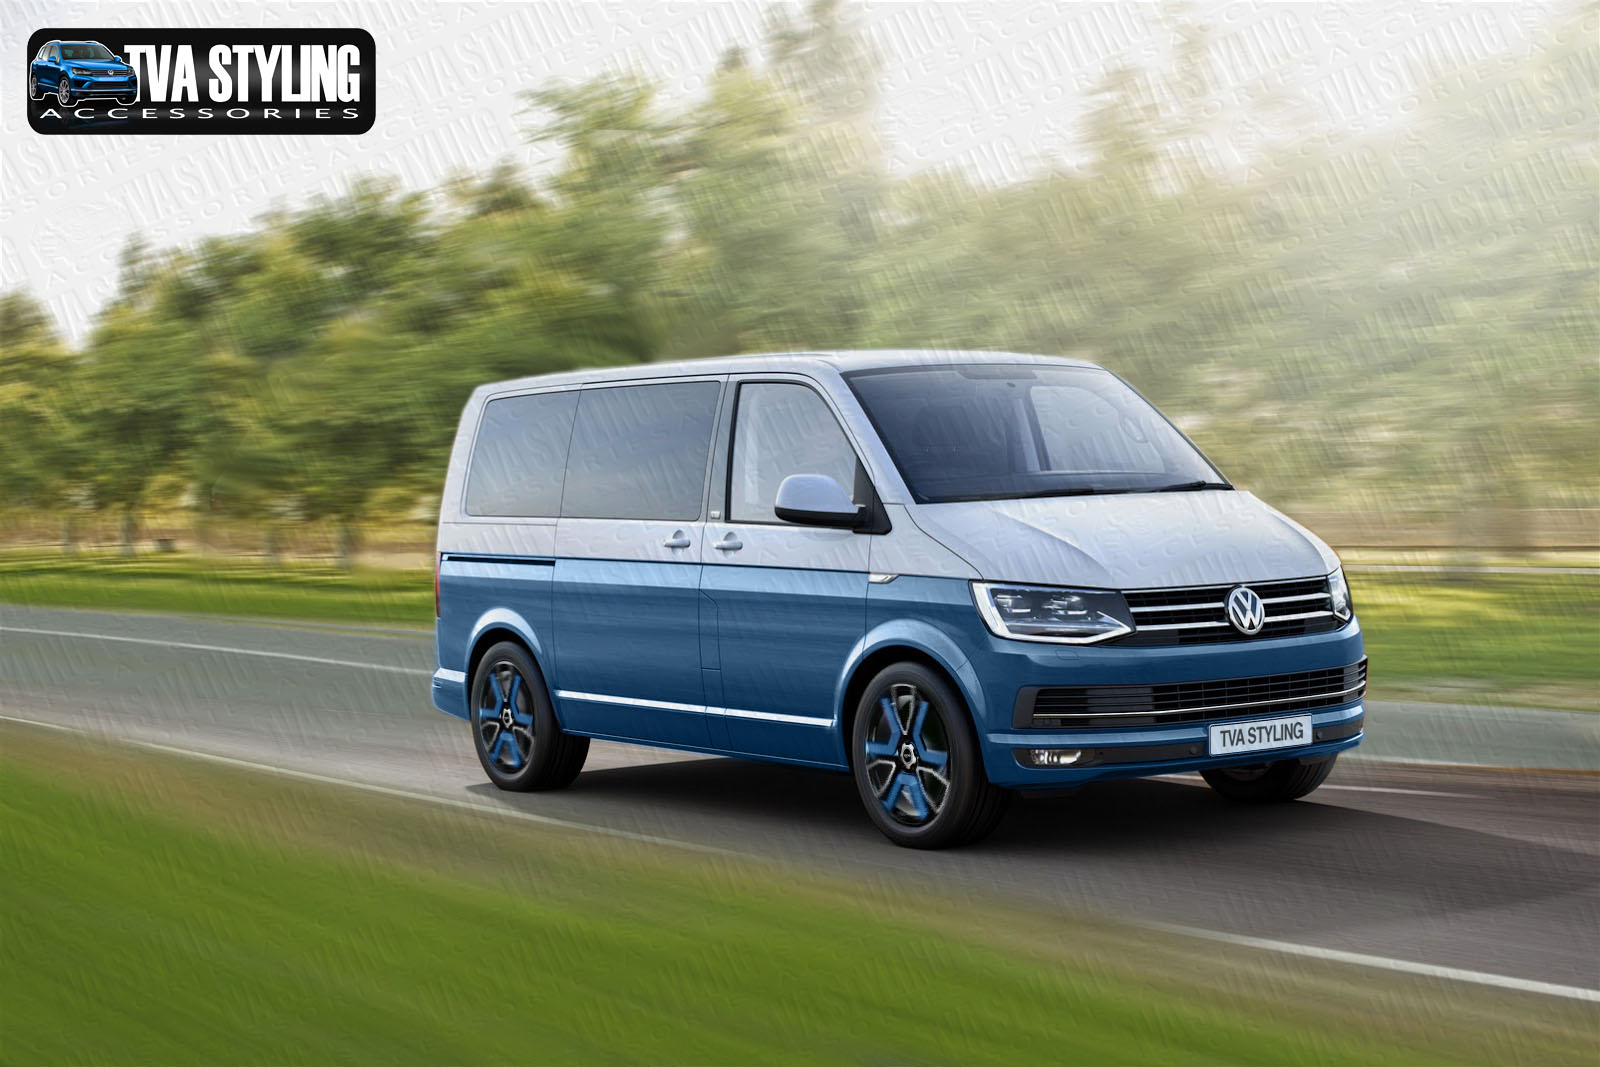 vw transporter t6 alloy wheels in vw colour tva styling. Black Bedroom Furniture Sets. Home Design Ideas